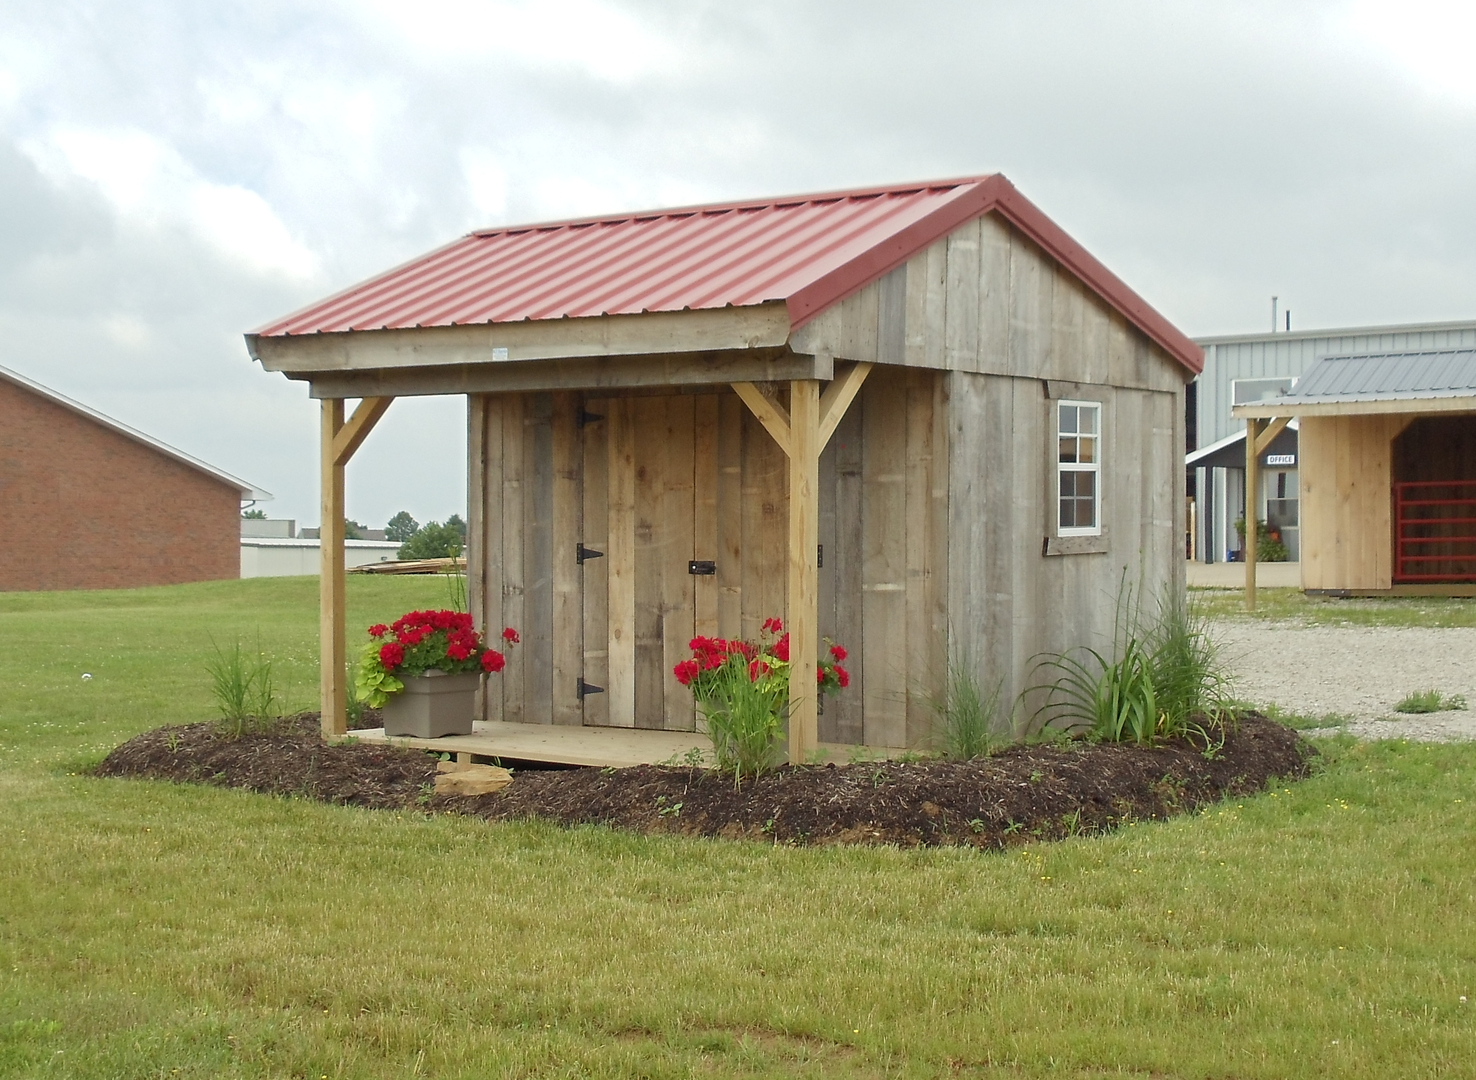 lofted photos for ideas davis portable barn house top cabin plans pre built barns buildings arkansas